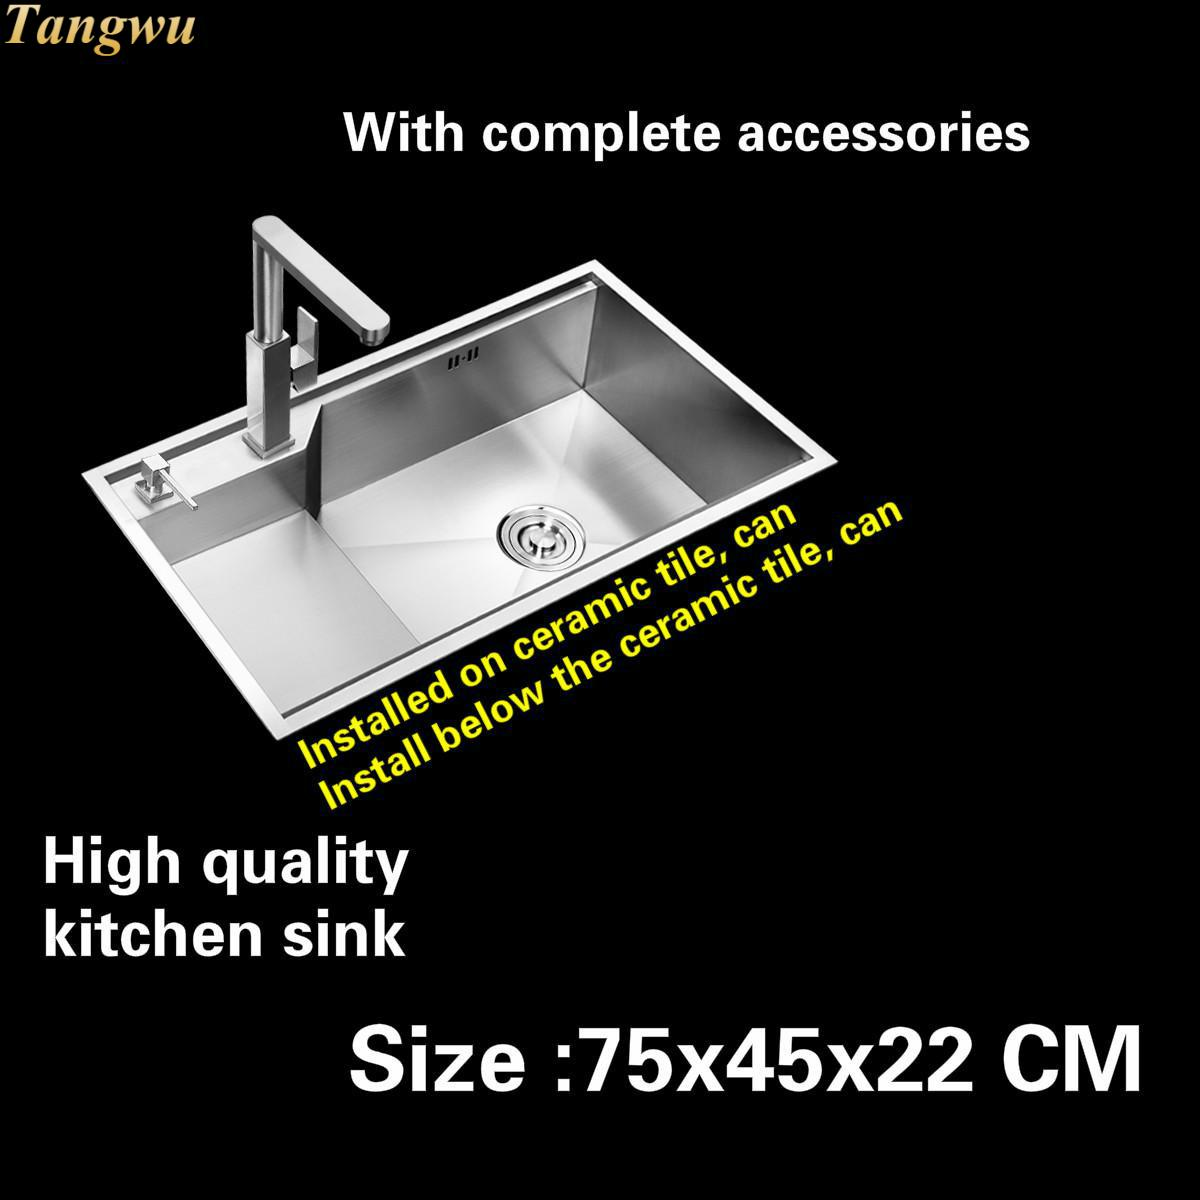 Tangwu High quality 4 mm thick food-grade 304 stainless steel kitchen sink durable handmade large single slot 75x45x22 CMTangwu High quality 4 mm thick food-grade 304 stainless steel kitchen sink durable handmade large single slot 75x45x22 CM